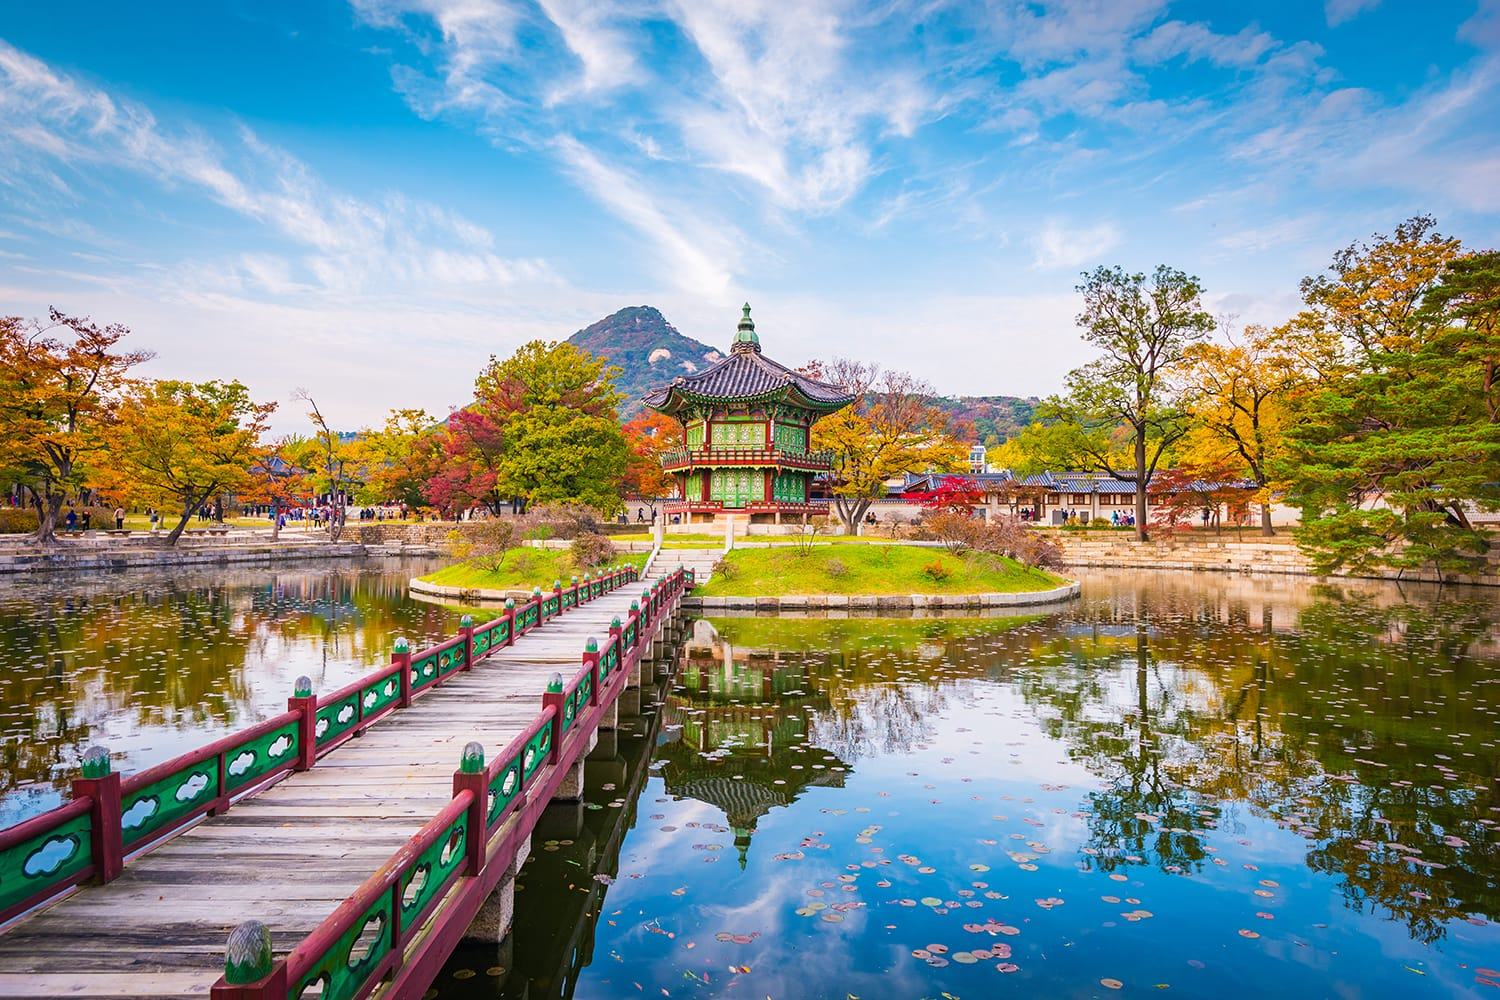 Places south top korea in Best Places